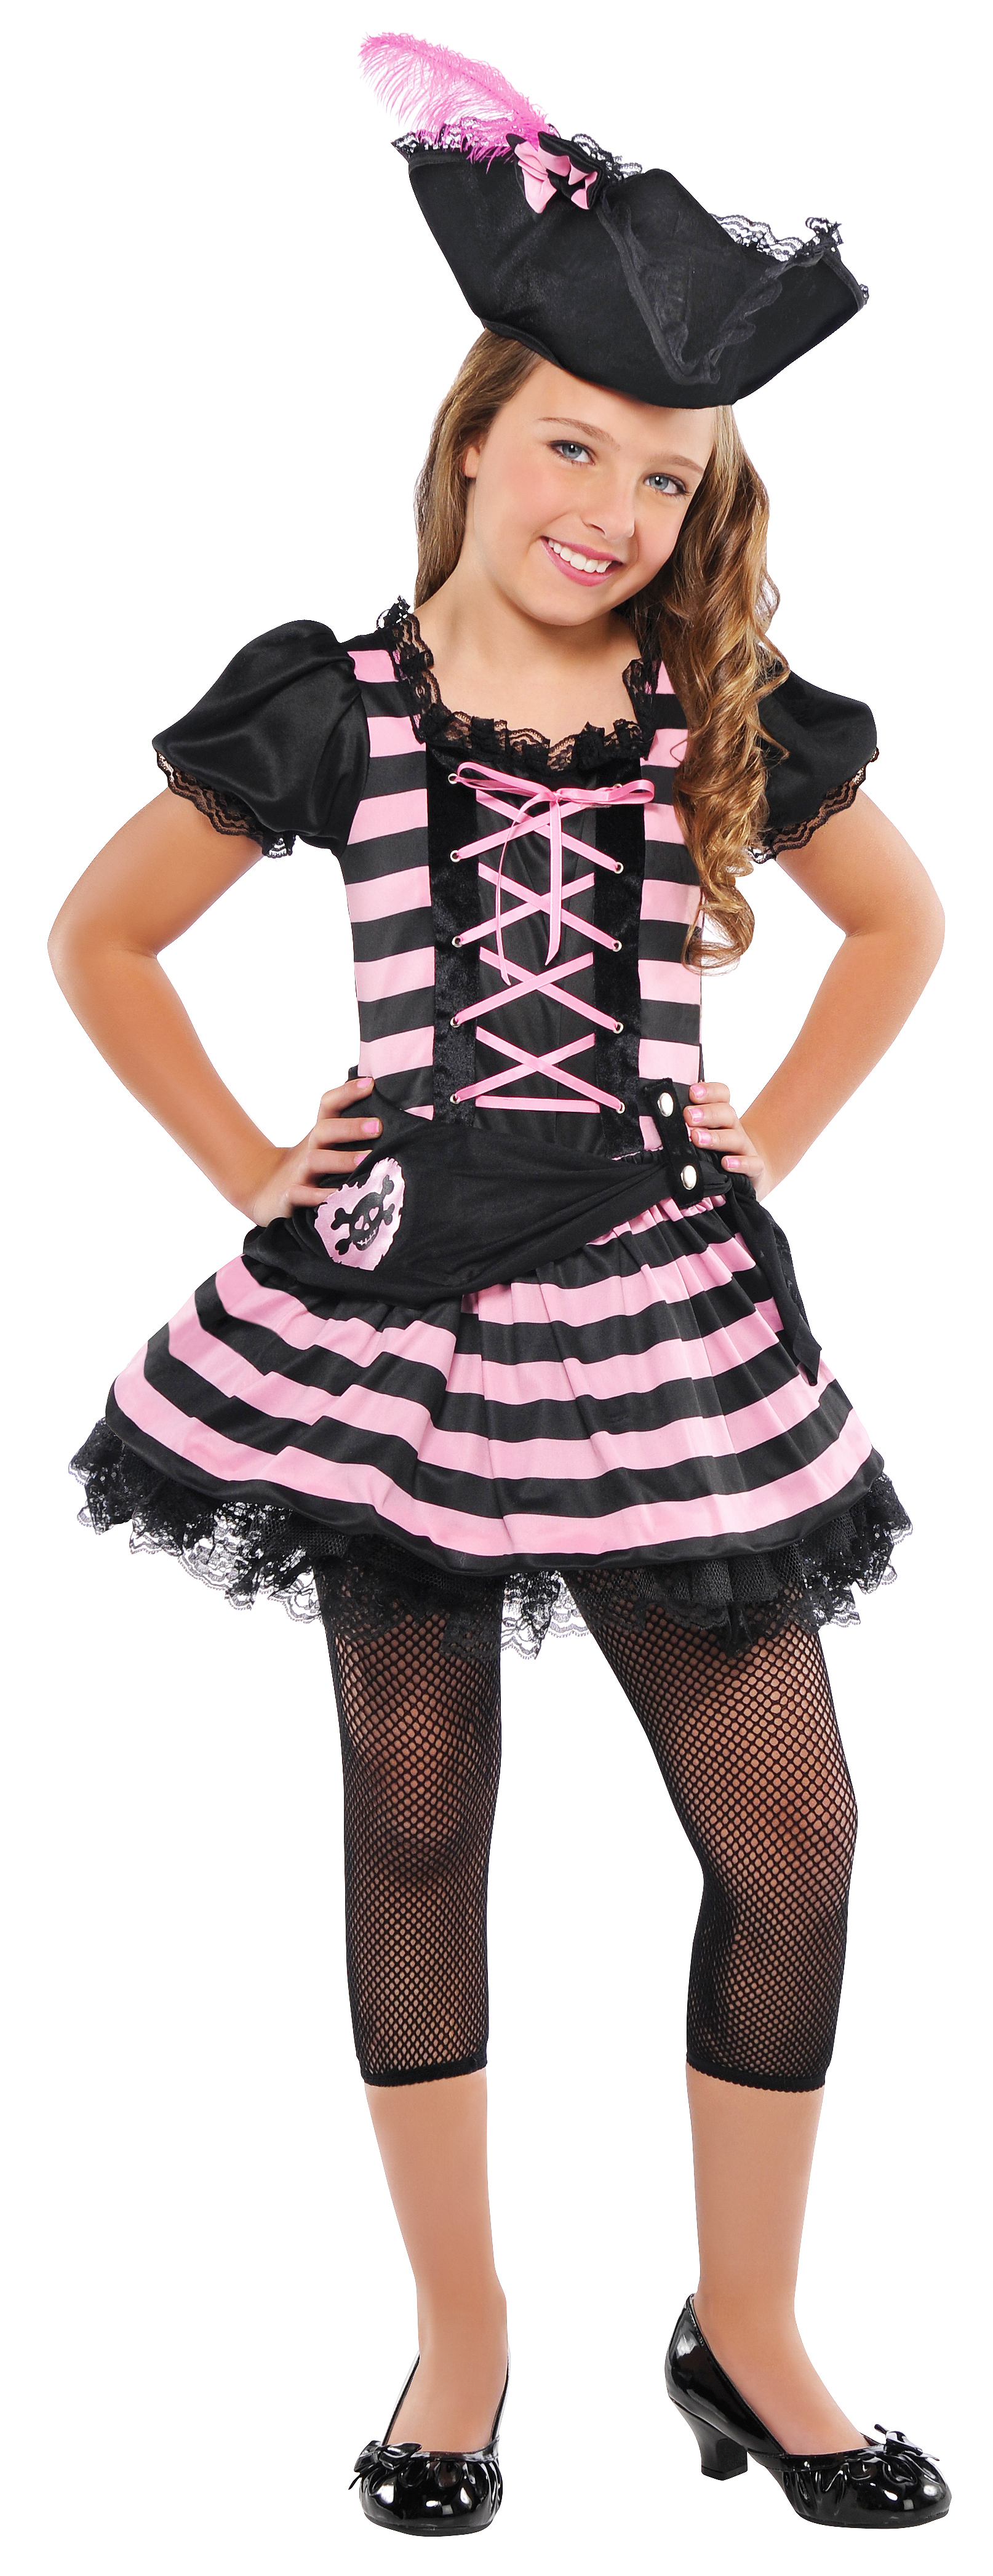 Sweetheart Pirate Costume Am 997649 0